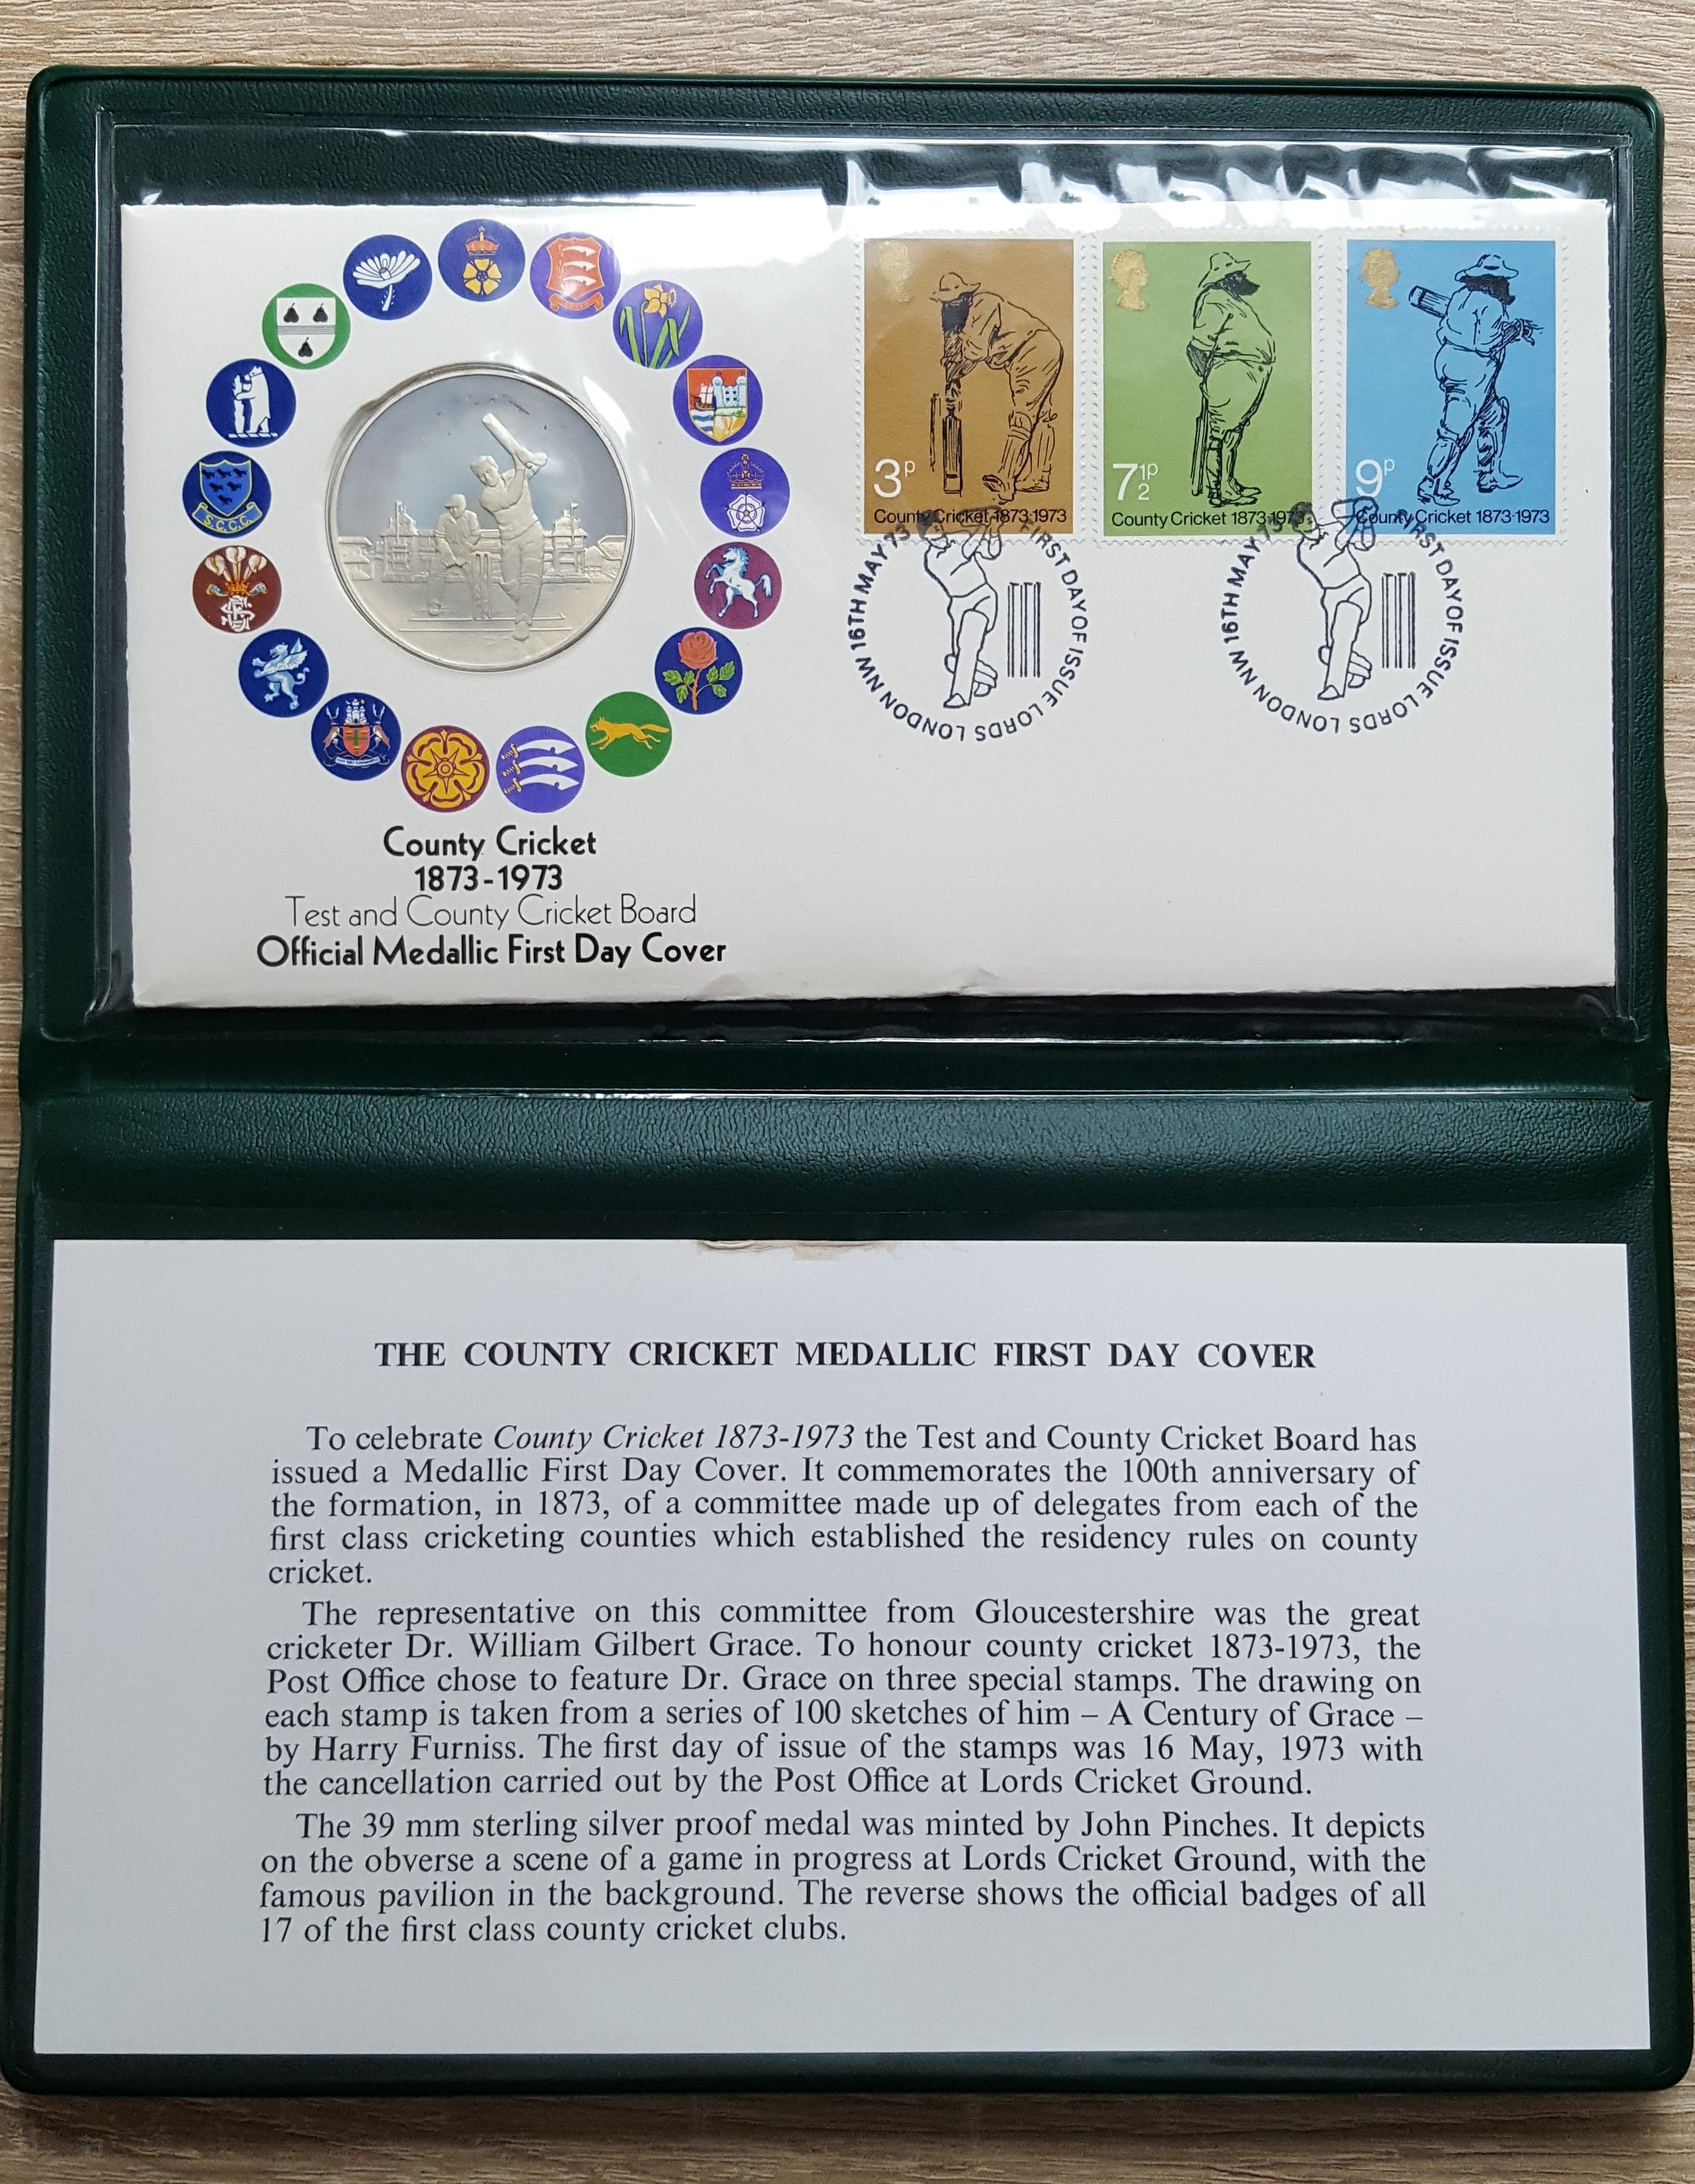 Cricket Board 1873 - 1973 Medallic (Sterling Silver Proof) First Day Cover.